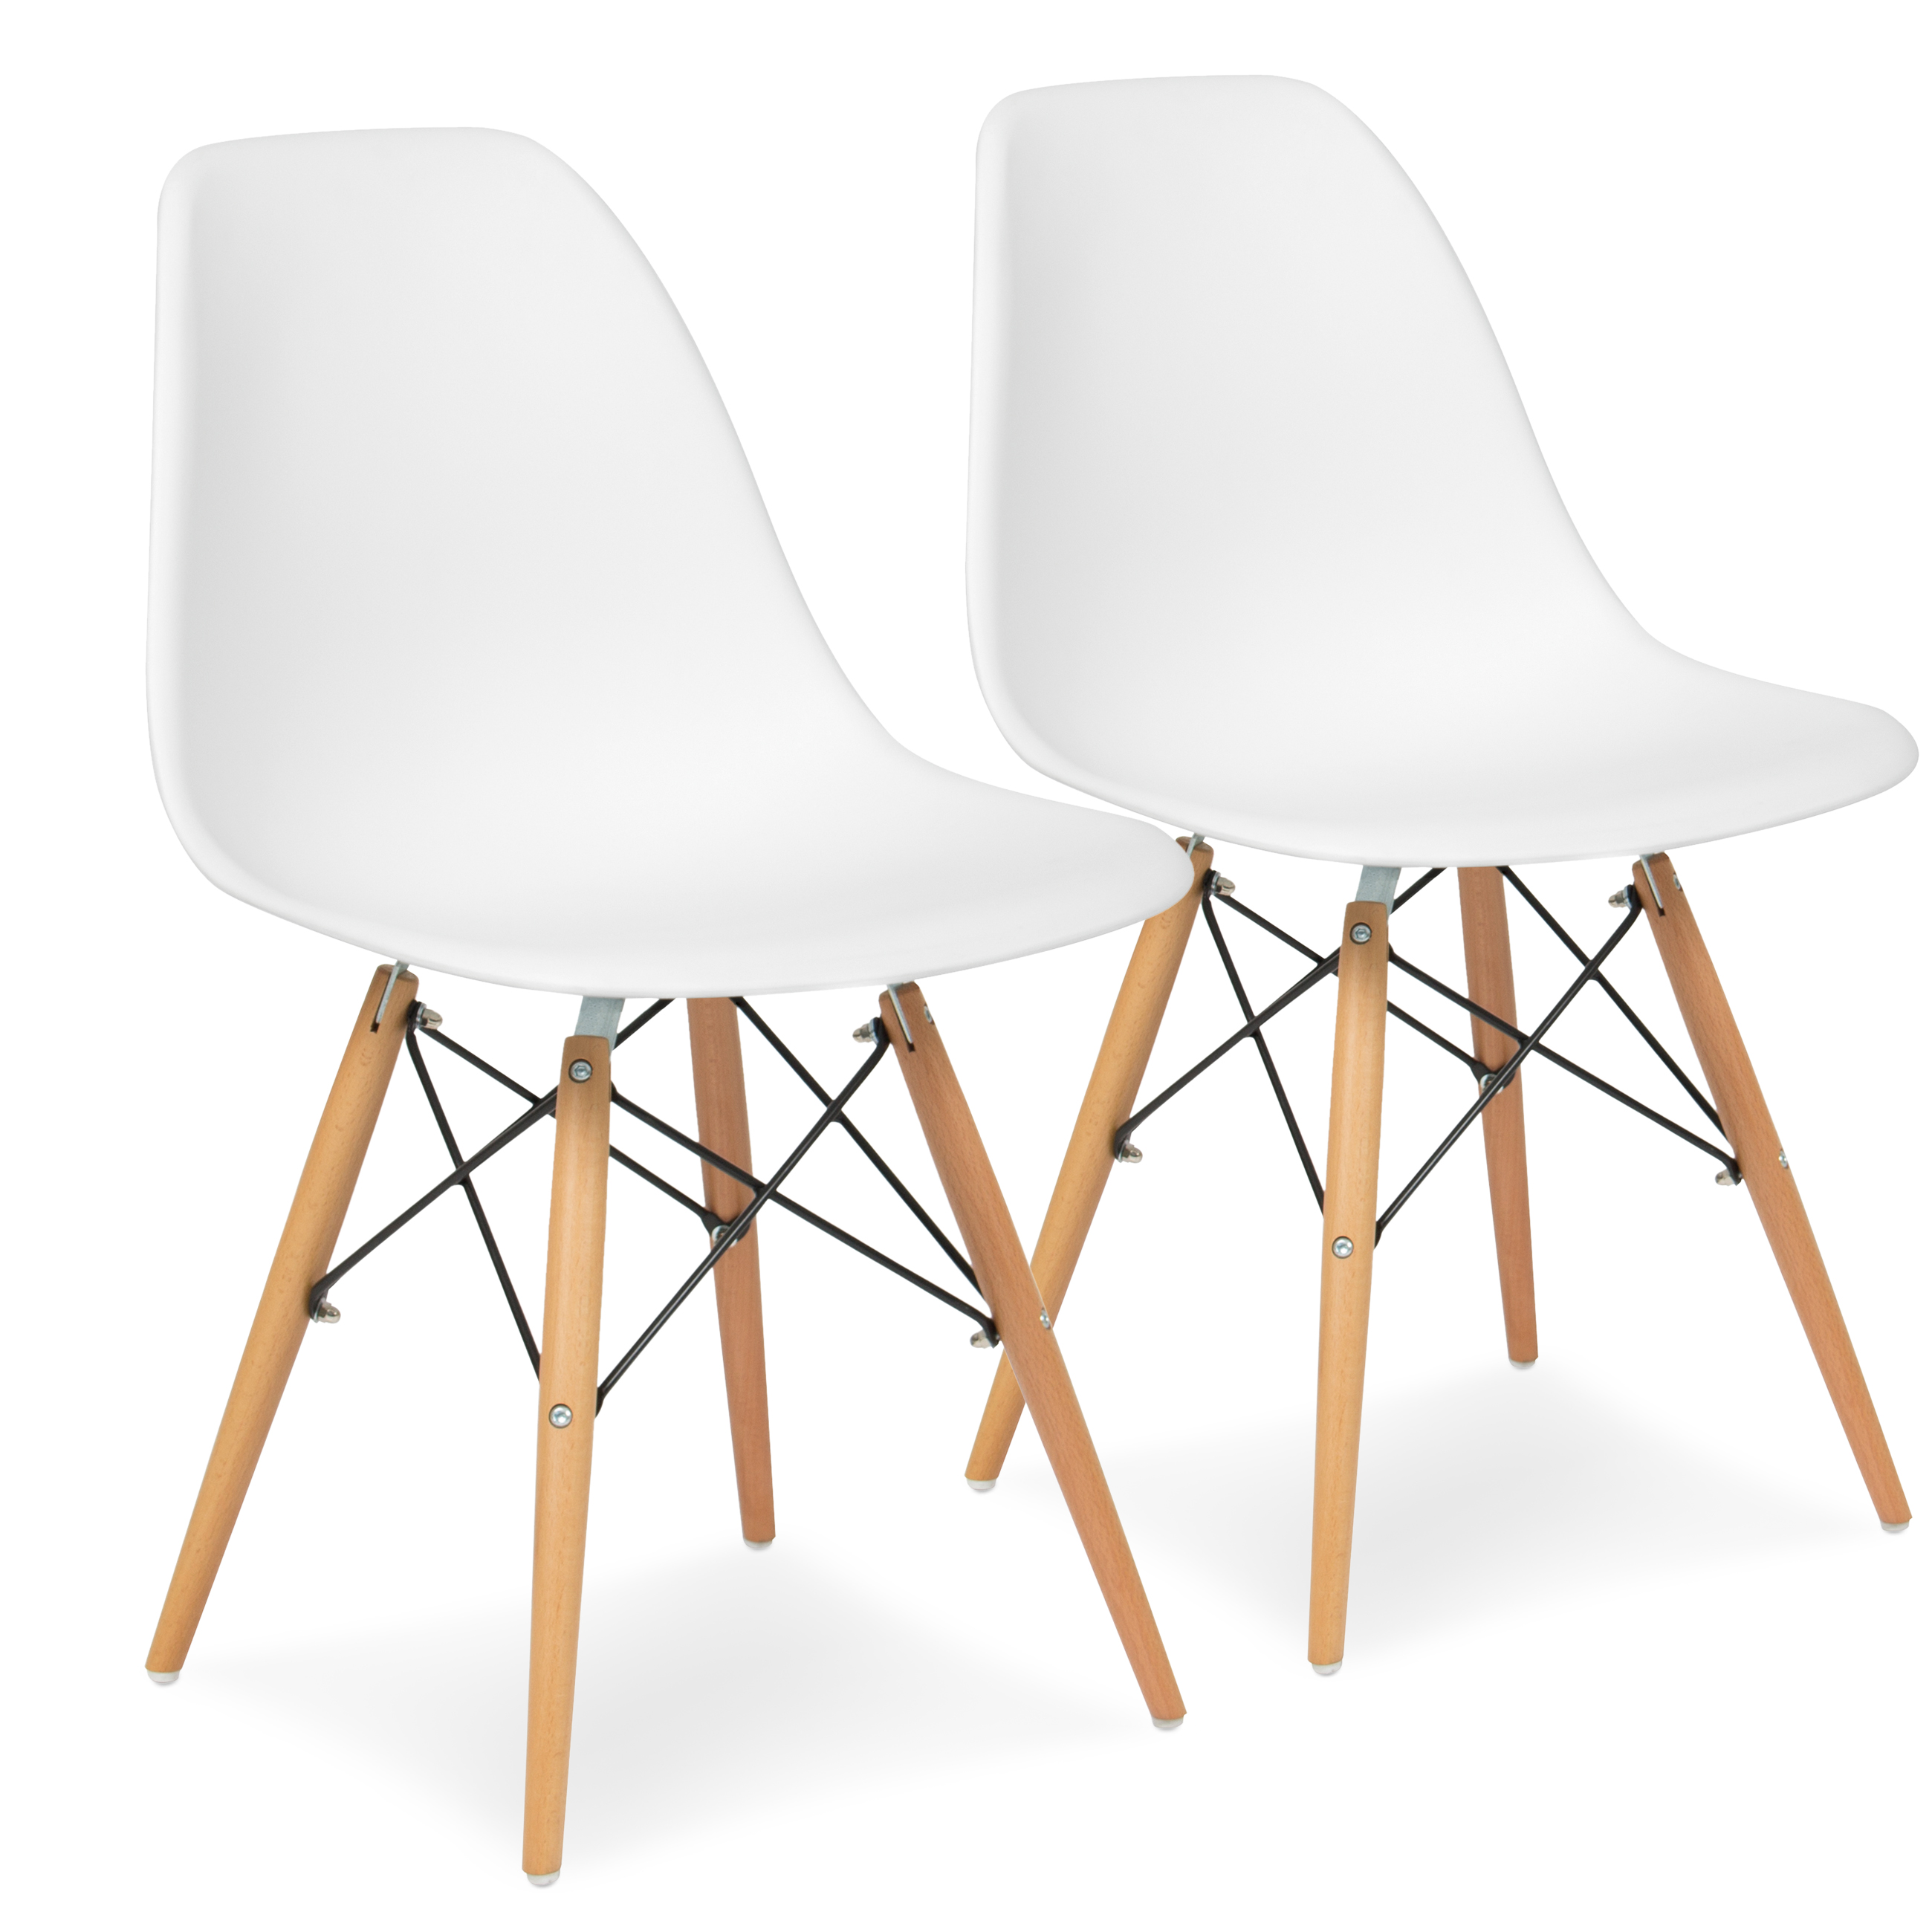 Best Choice Products Set Of 2 Eames Style Dining Chair Mid Century Modern  Molded Plastic Shell